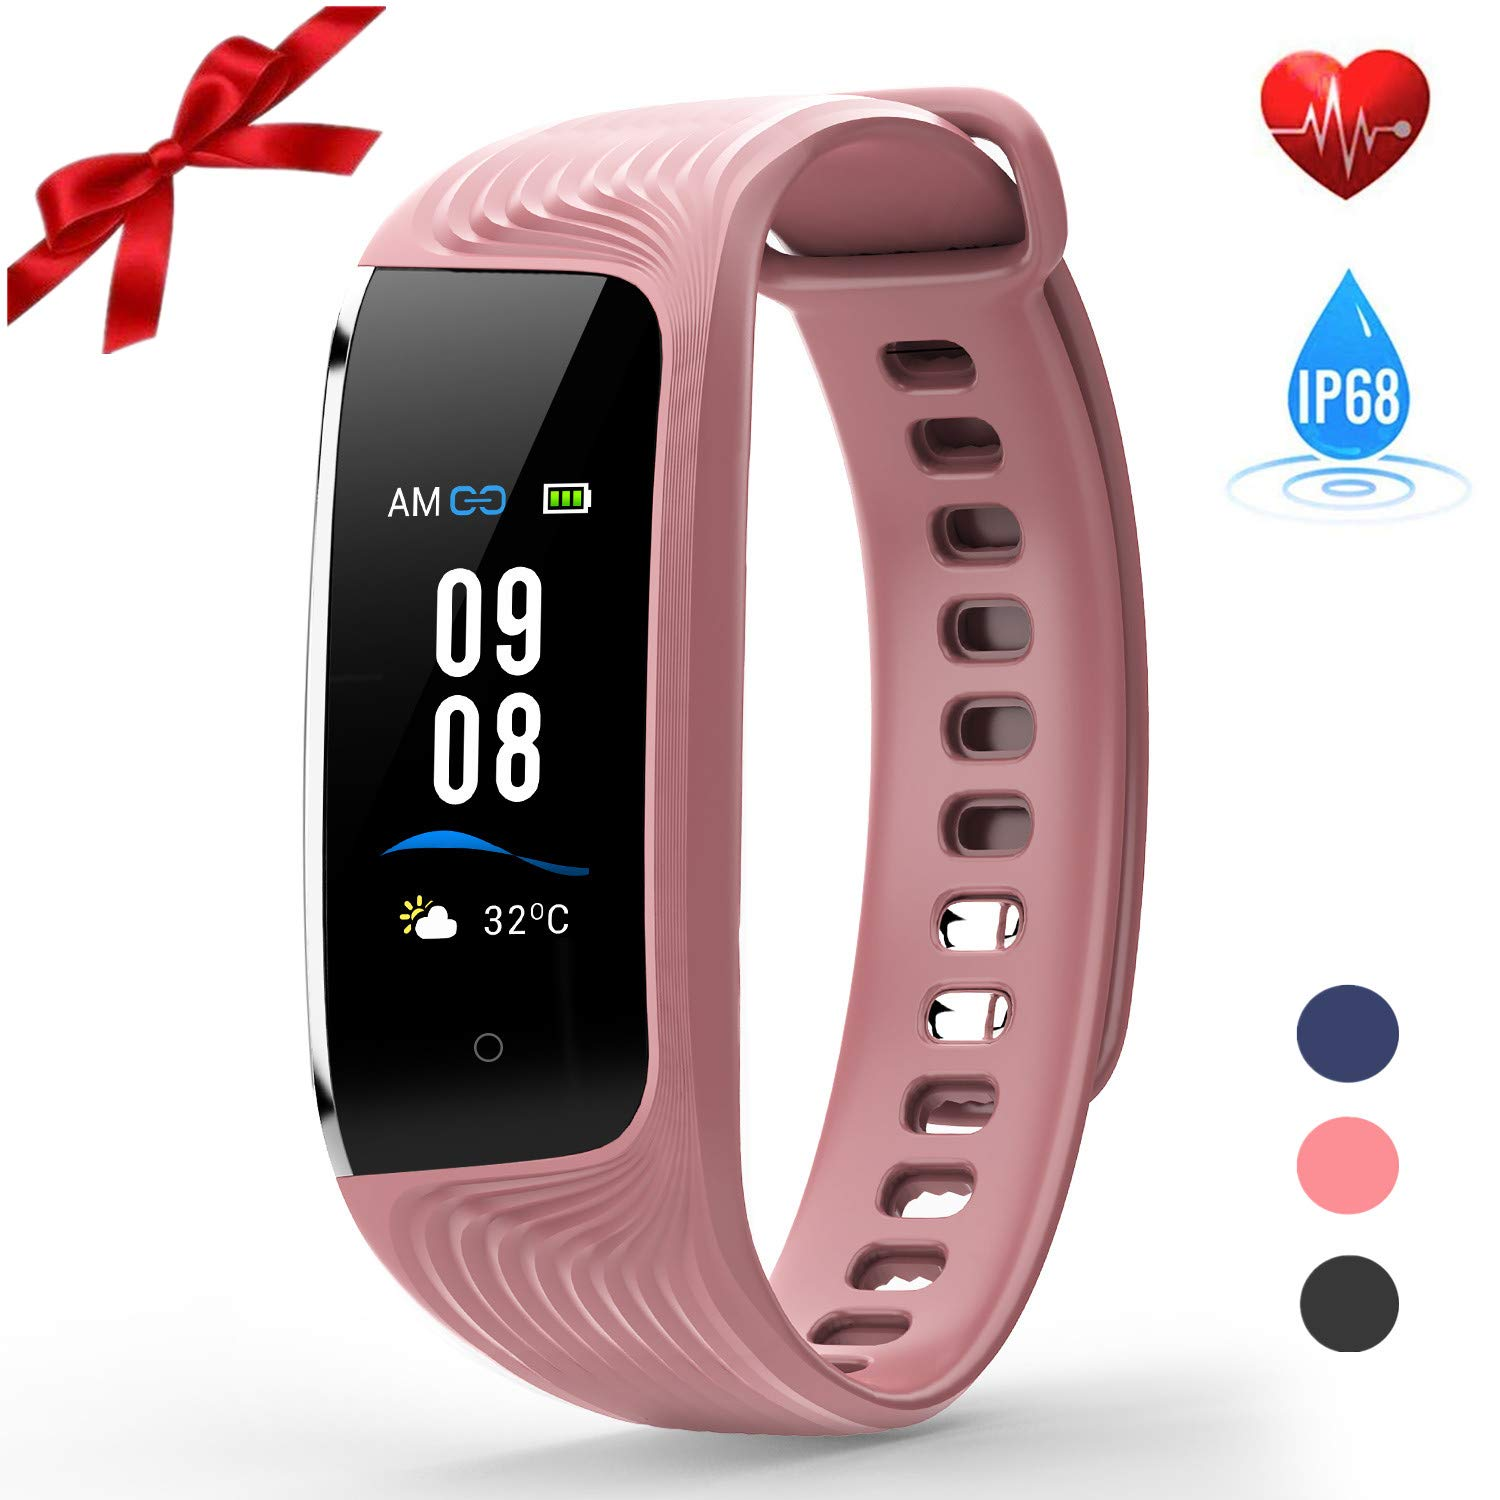 HONITURE Waterproof Fitness Tracker, Heart Rate Monitor Colour Screen Activity Tracker with Step Calorie Counter, GPS Pedometer, Slim Smart Bracelet for Kids Women Men